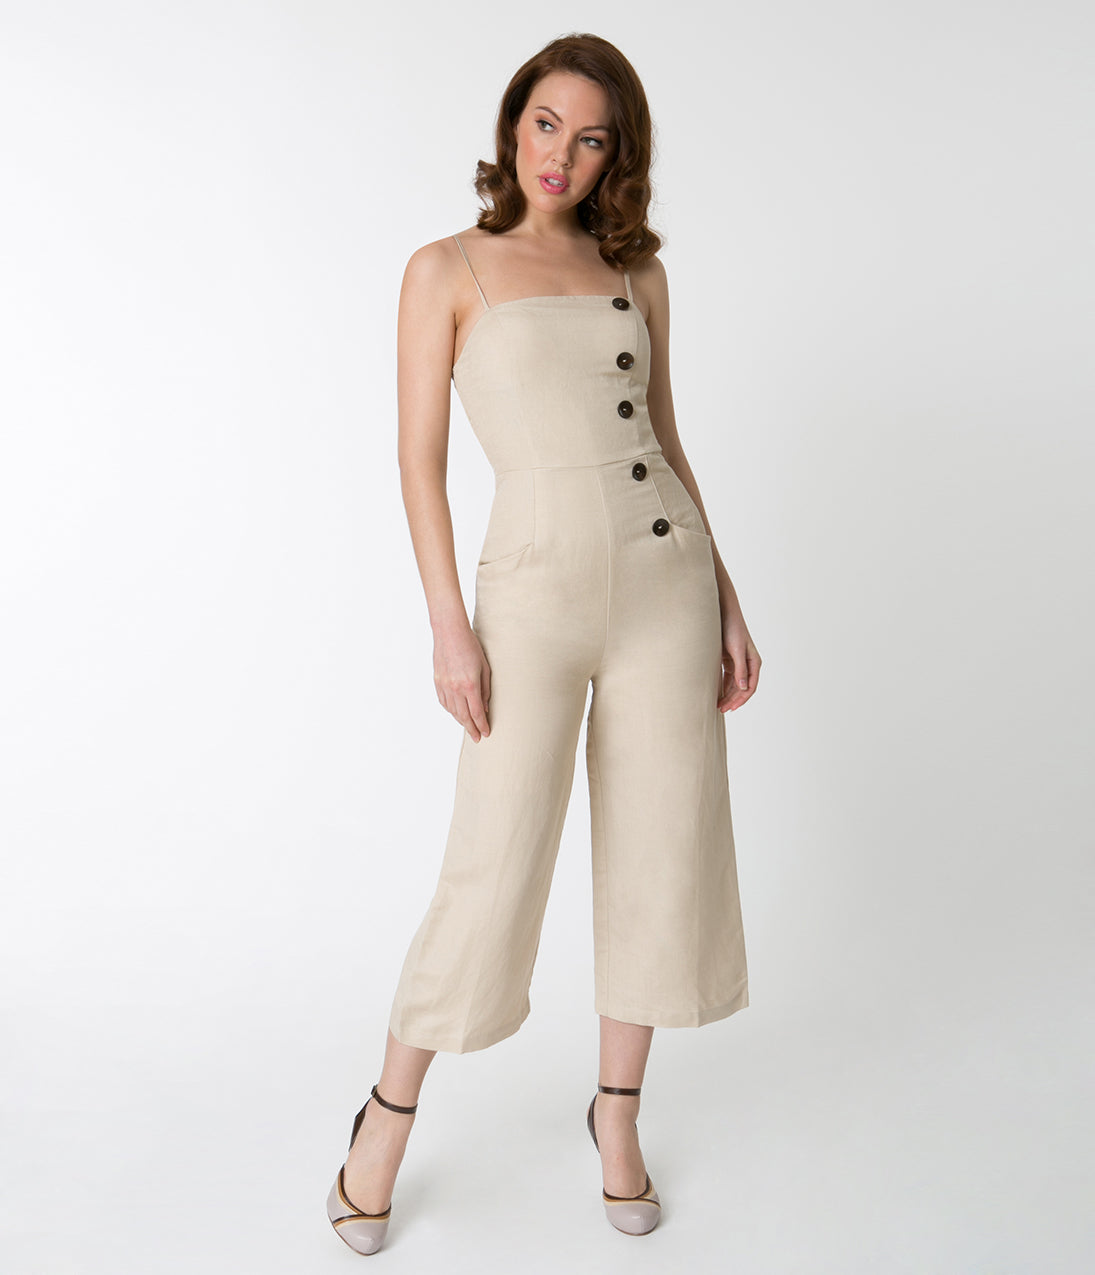 1950s Pants & Jeans- High Waist, Wide Leg, Capri, Pedal Pushers Retro Style Nude Linen Spaghetti Strap Capri Jumpsuit $58.00 AT vintagedancer.com